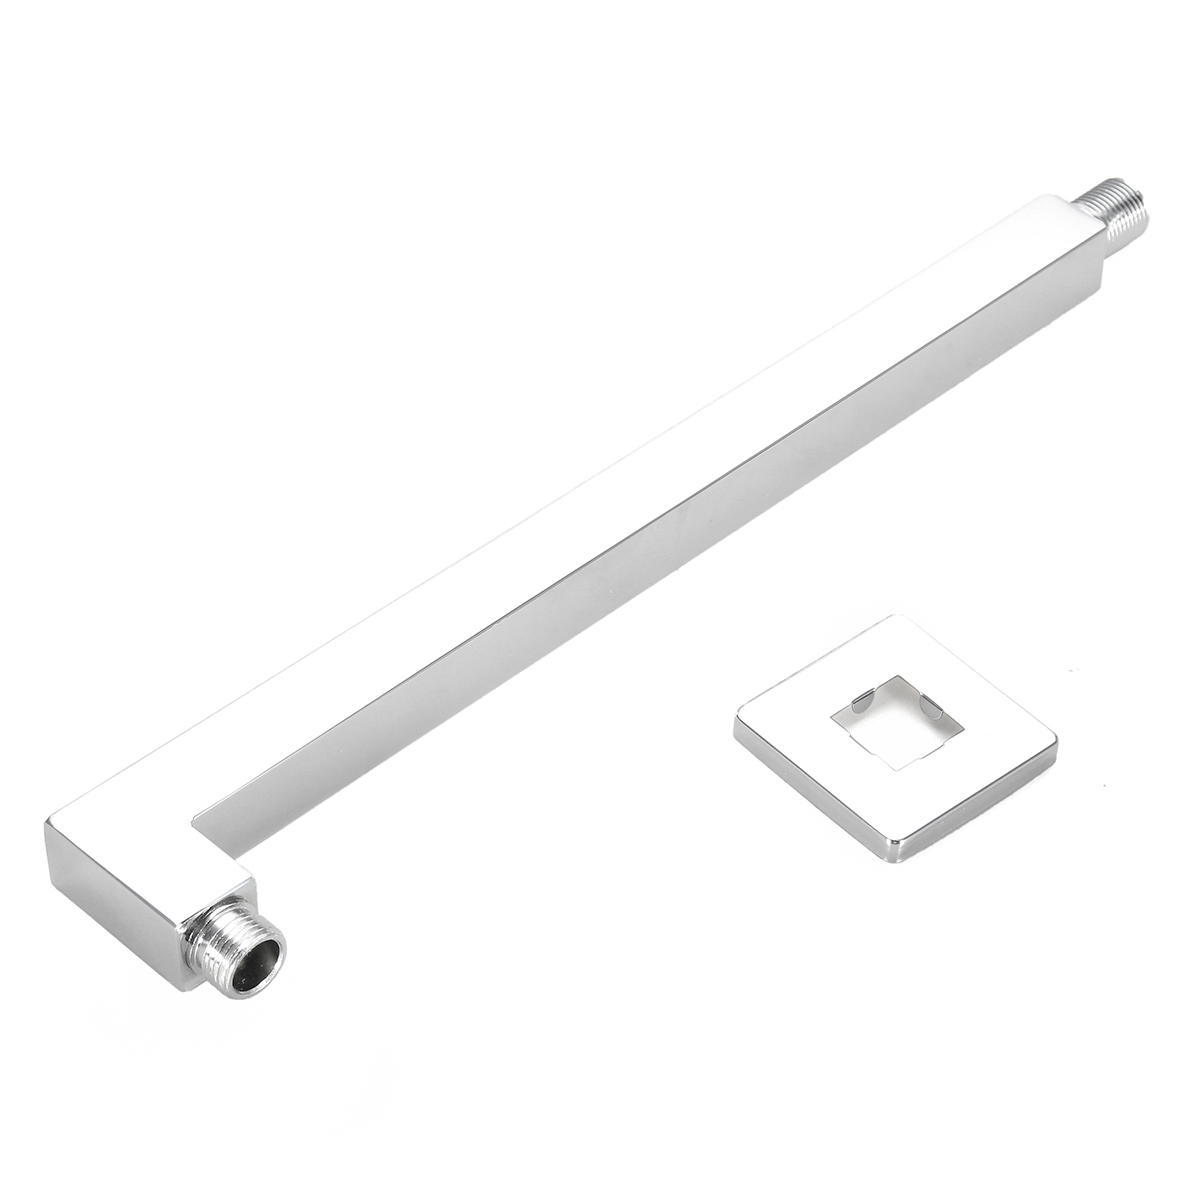 39.5cm Wall Mounted Square Copper Shower Extension Arm For Rainfall Shower Head Shower Arms Bathroom Tools Accessories